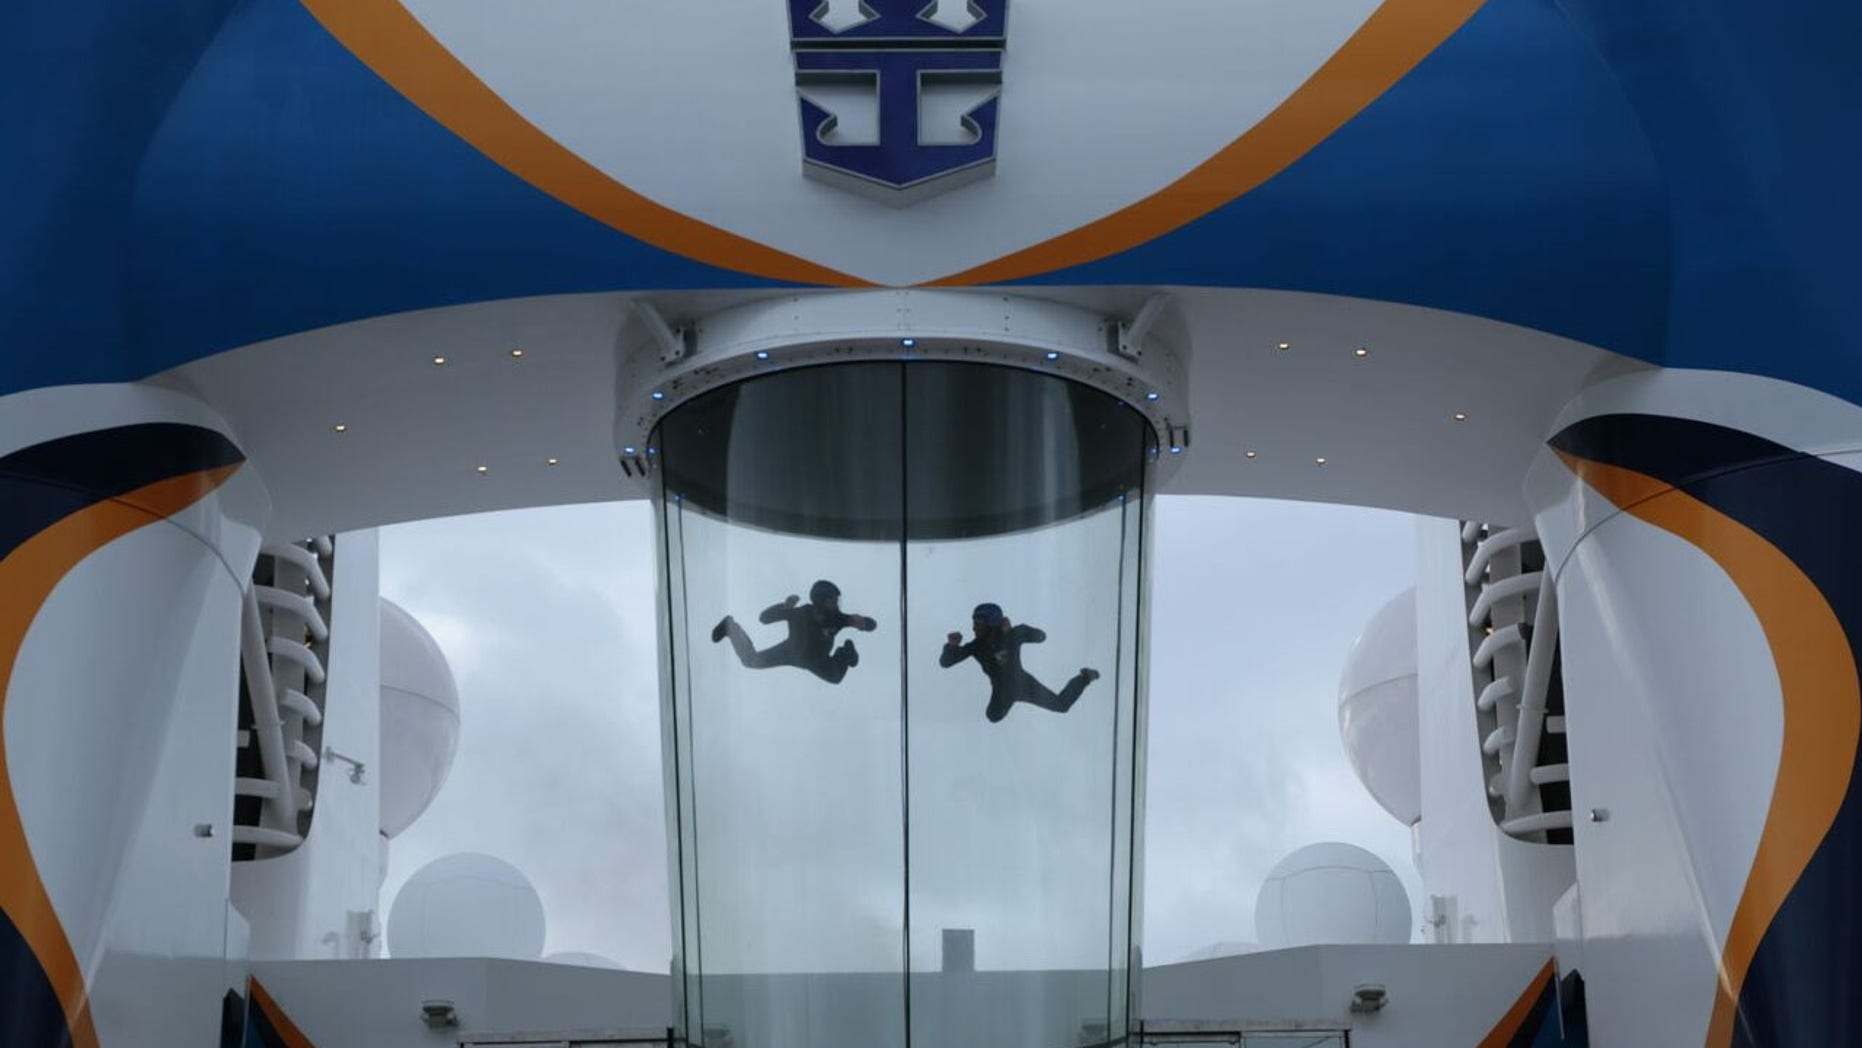 RipCord by iFly is a skydiving experience available to kids age 3 to 93 that takes place in a 23-foot-tall vertical wind tunnel.